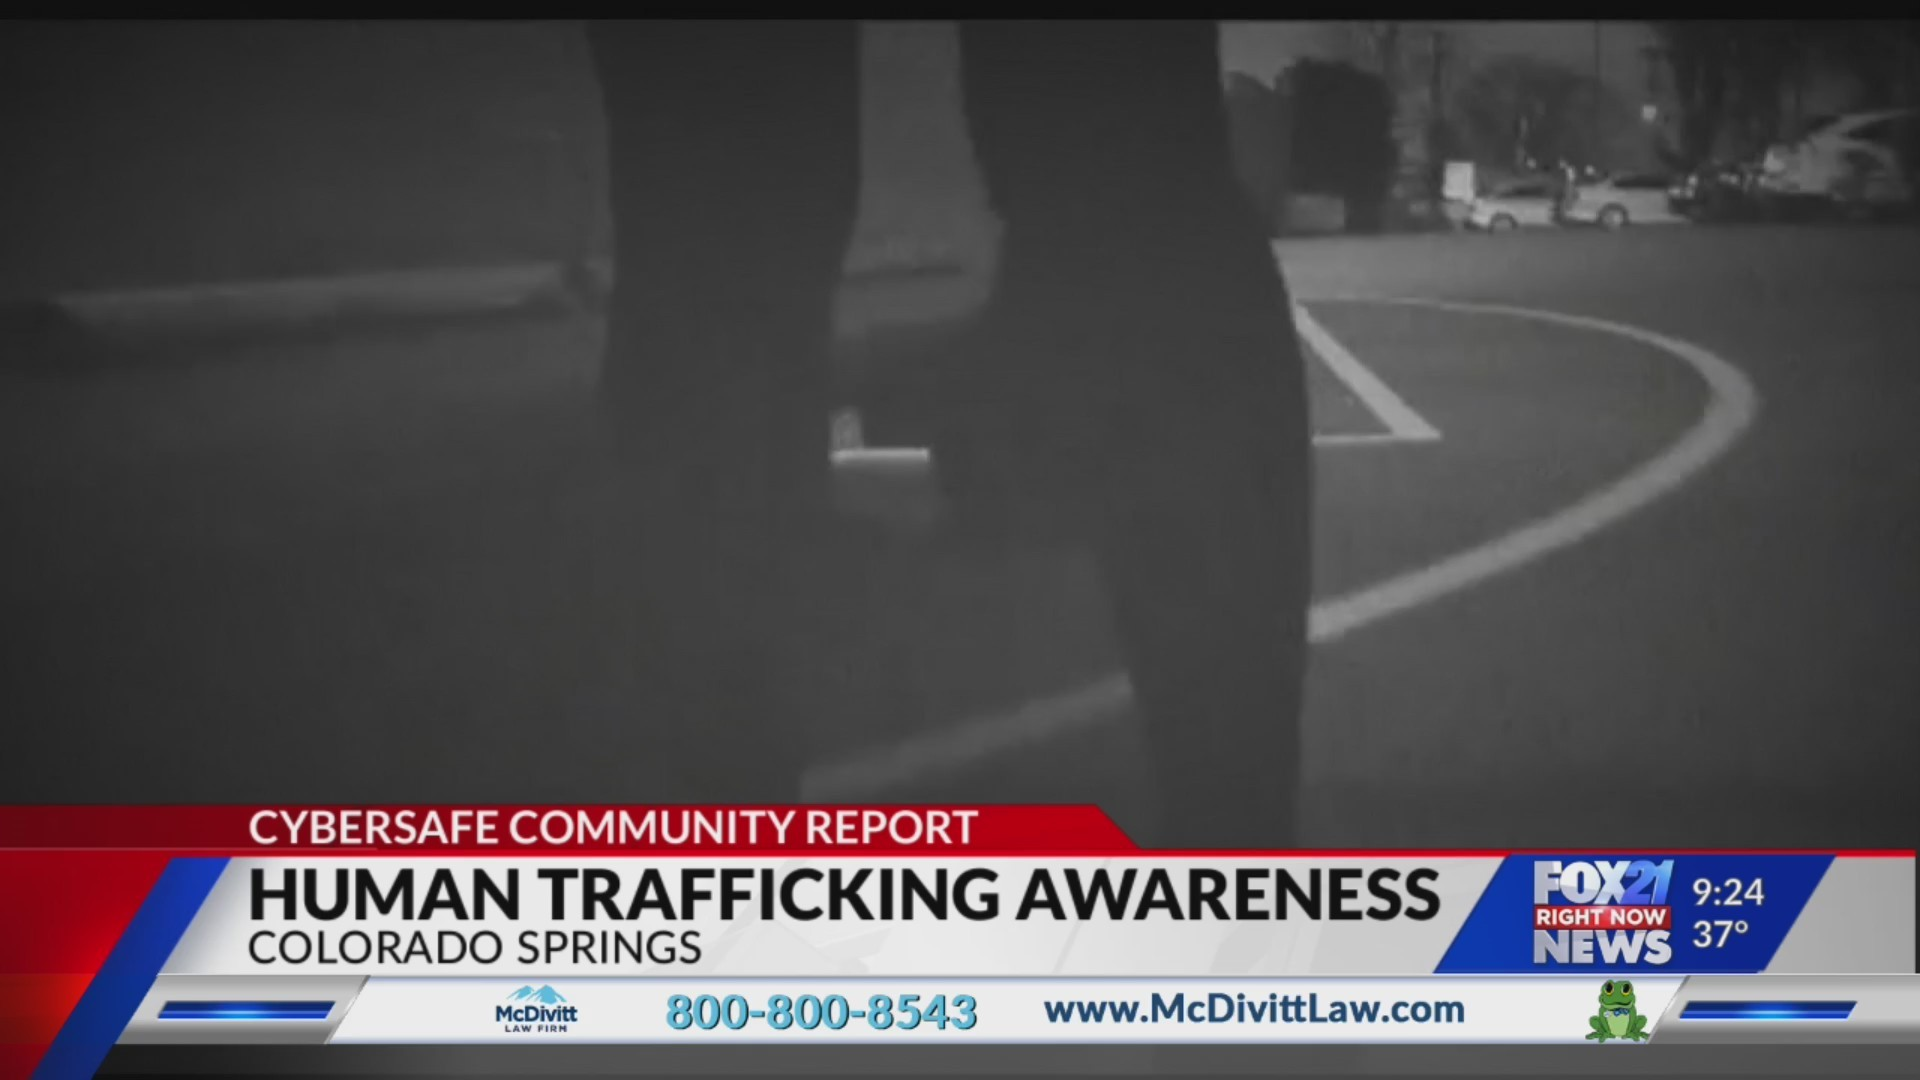 Cybersafe: Detecting Human Trafficking